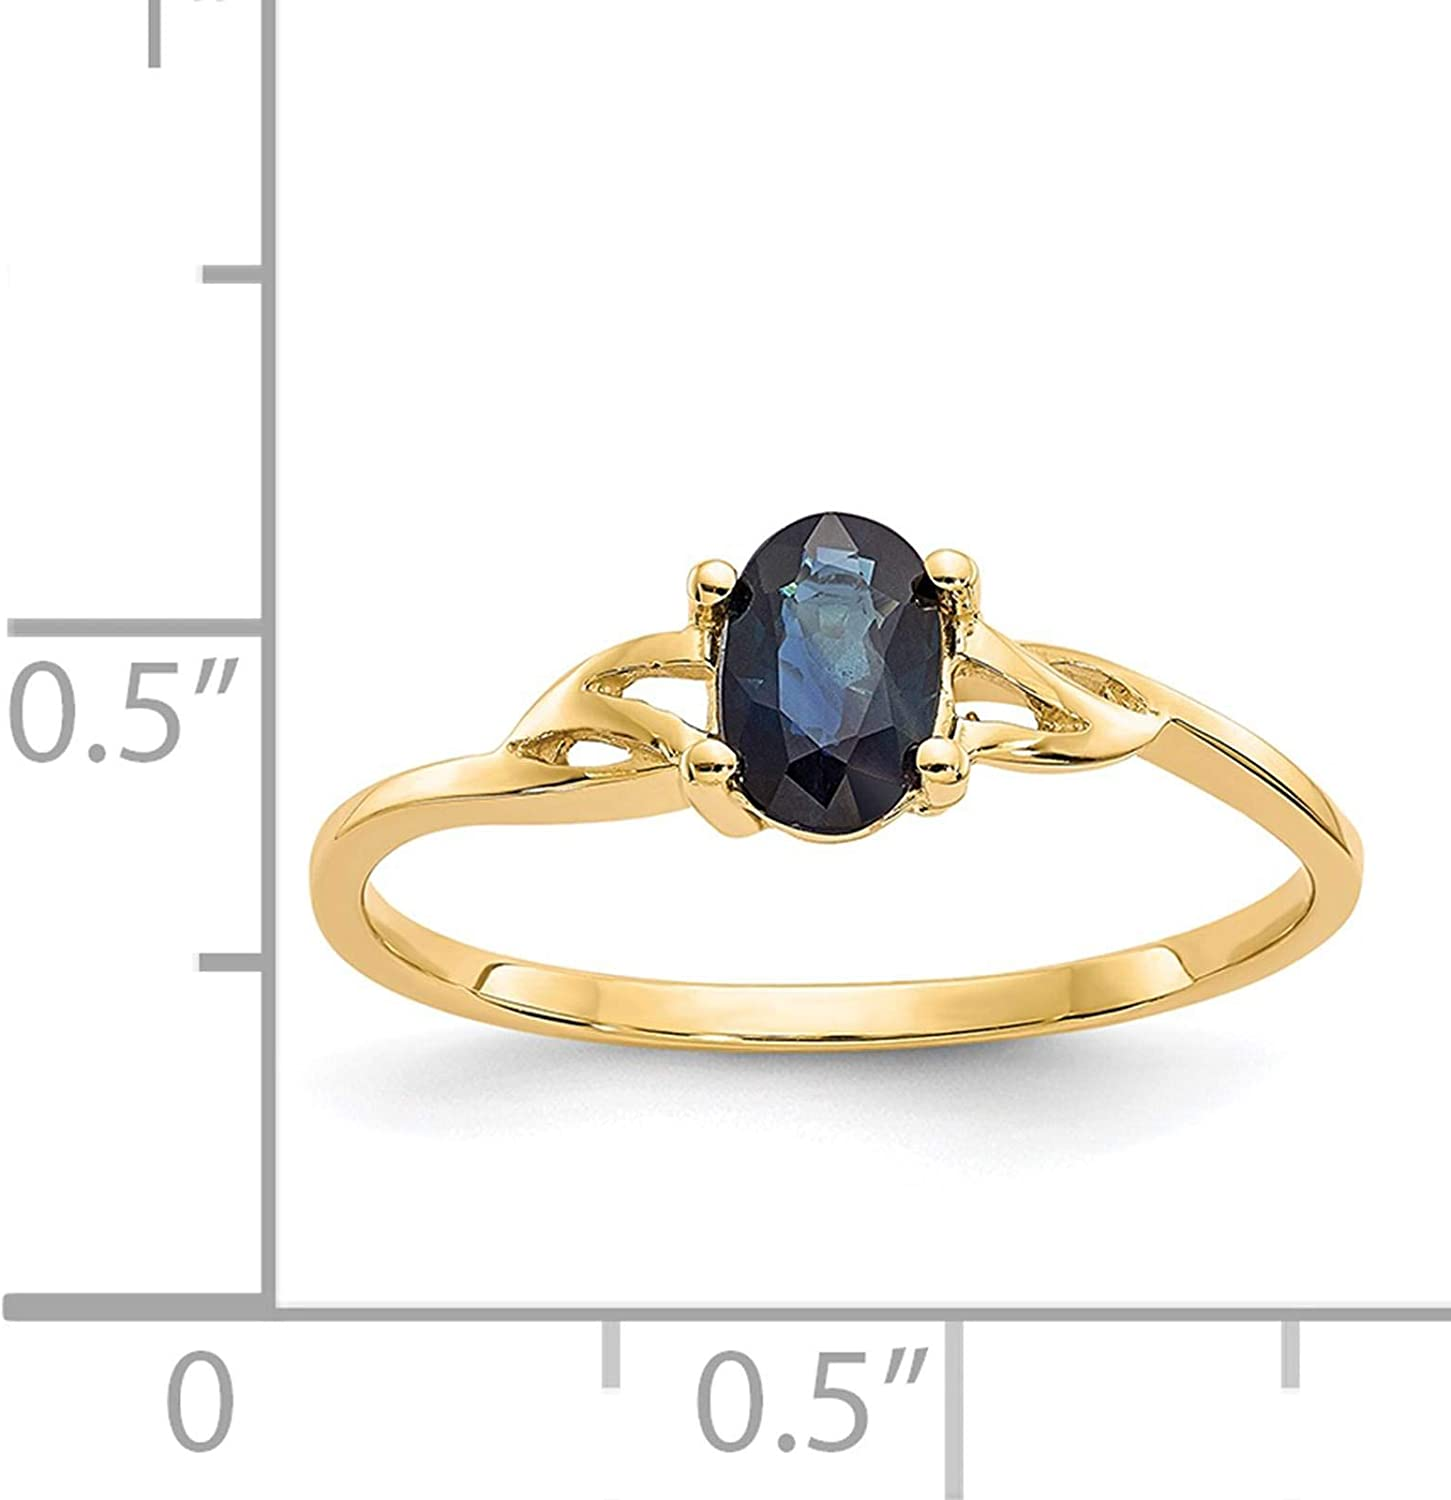 14K Yellow Gold Polished Oval Sapphire September Stone Ring Size 7